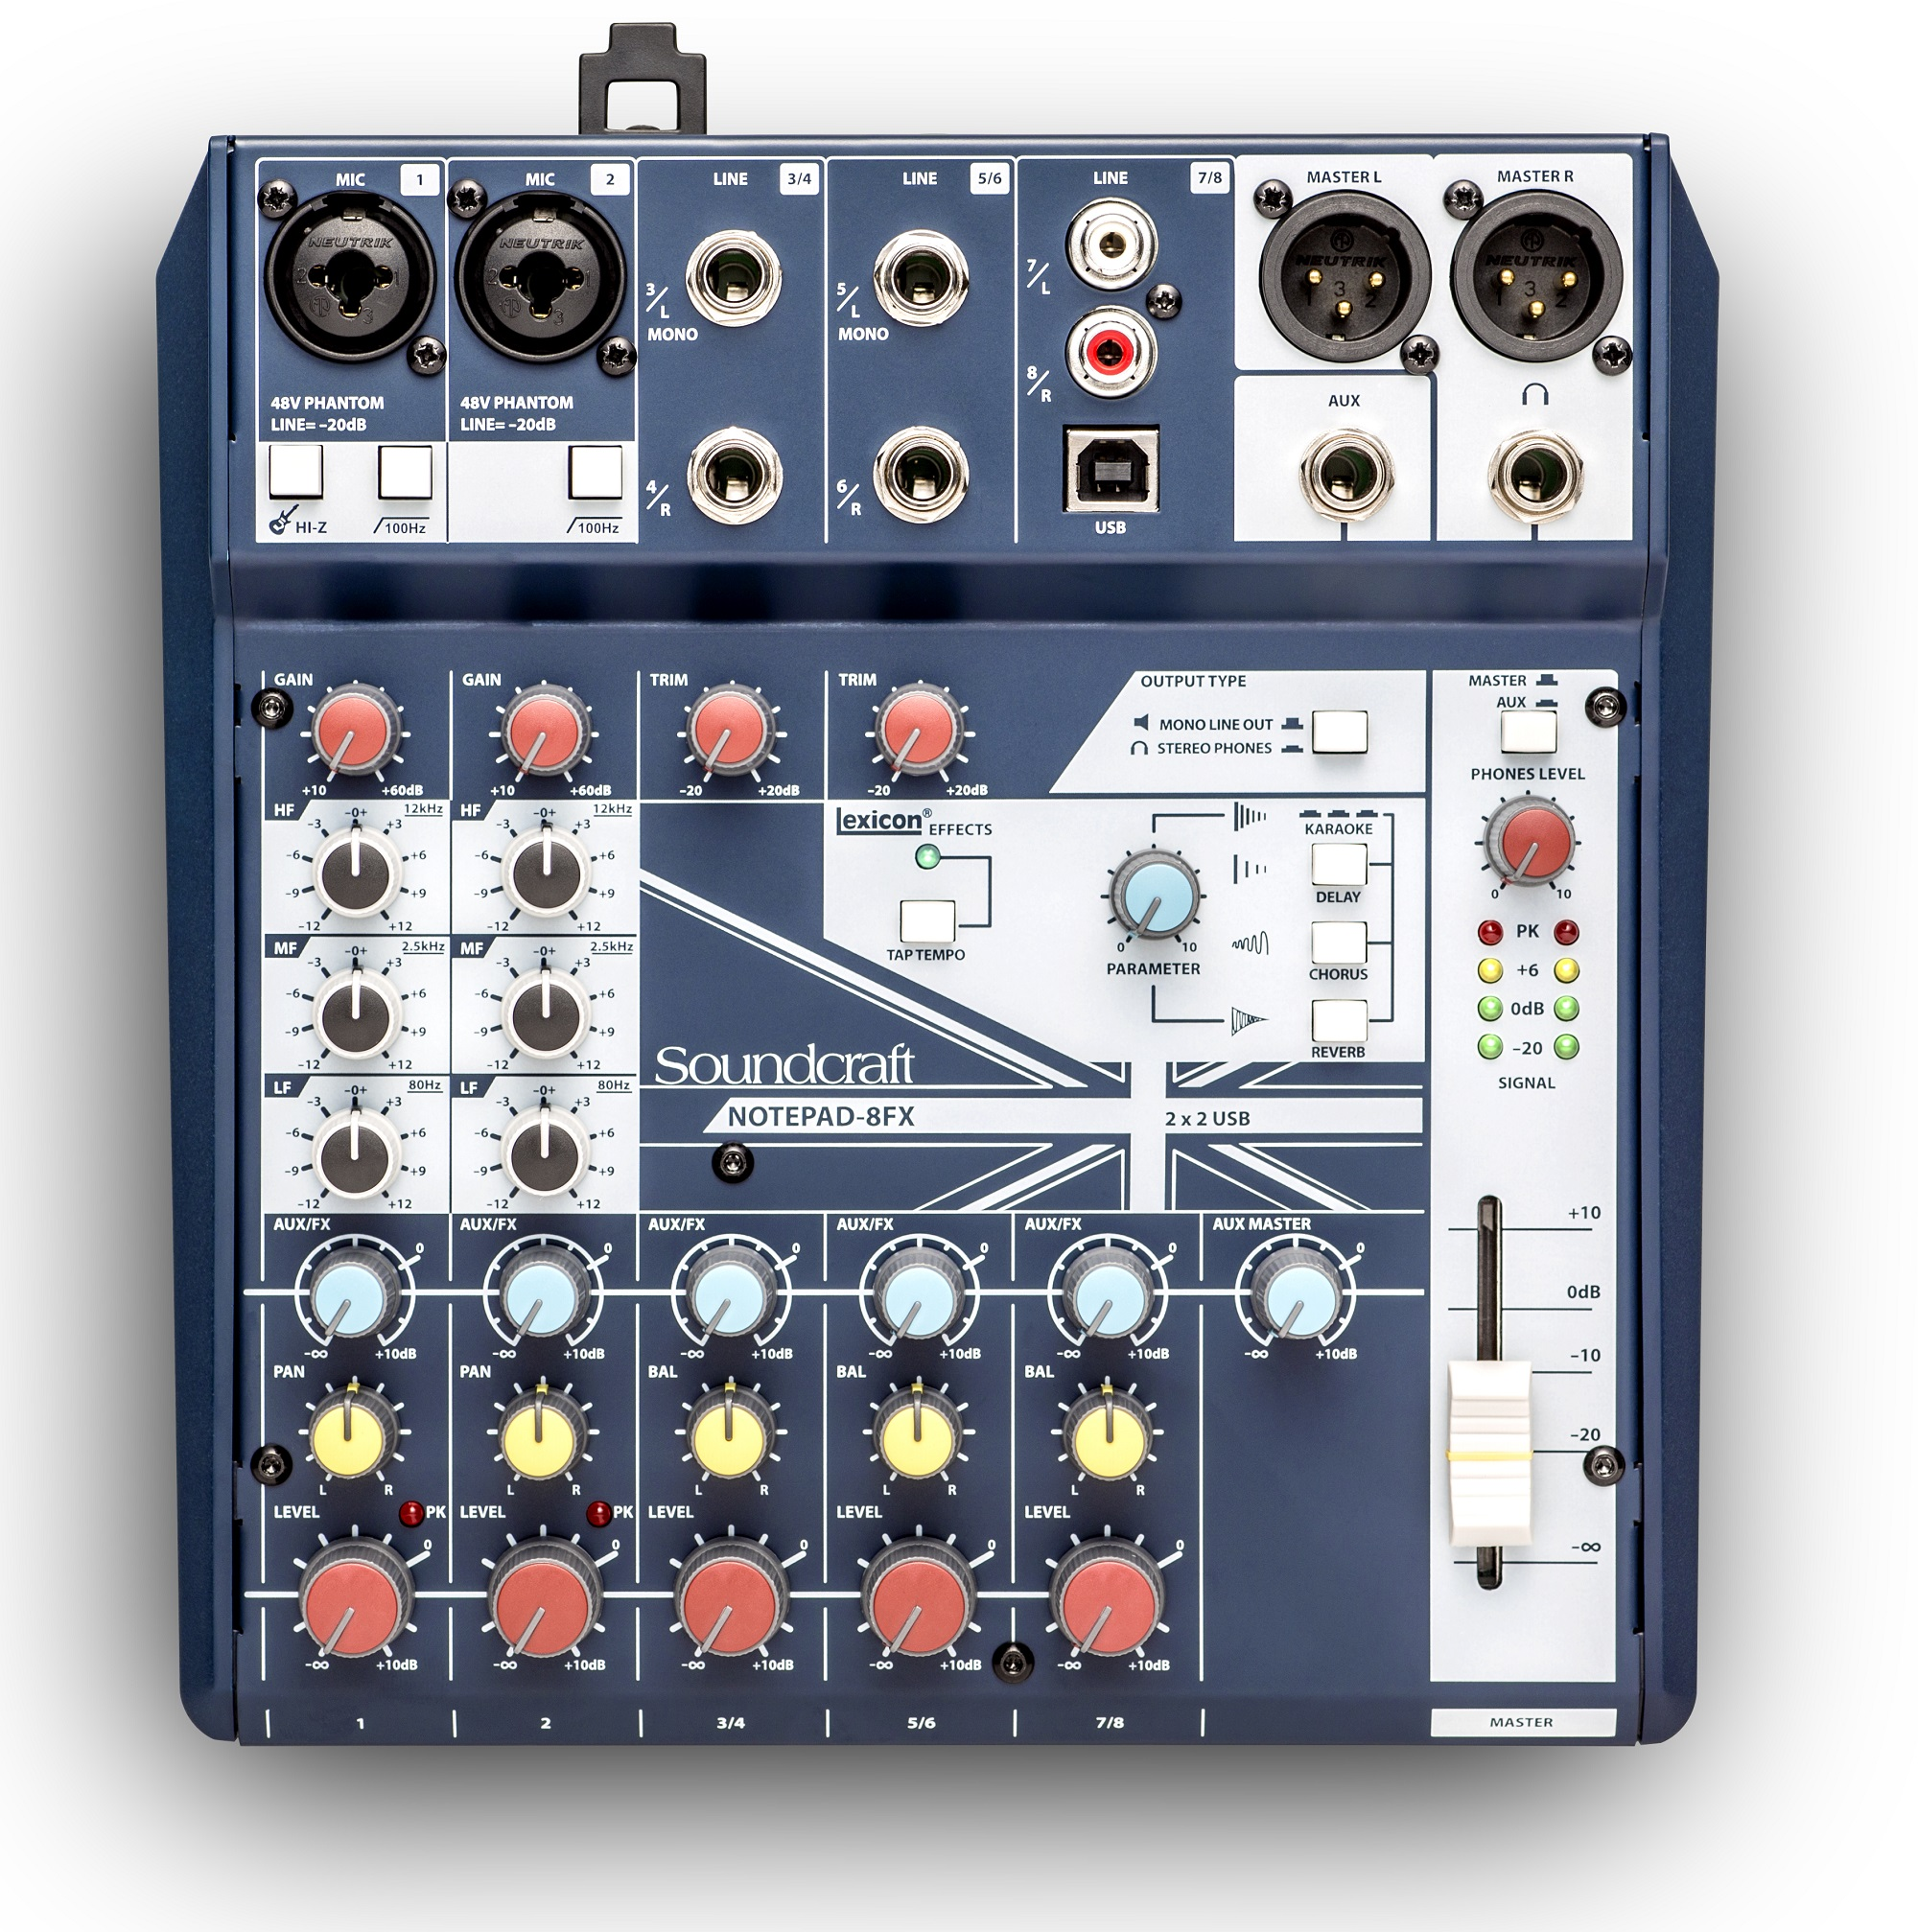 Mixer Soundcraft Notepad-8FX | Anh Duy Audio